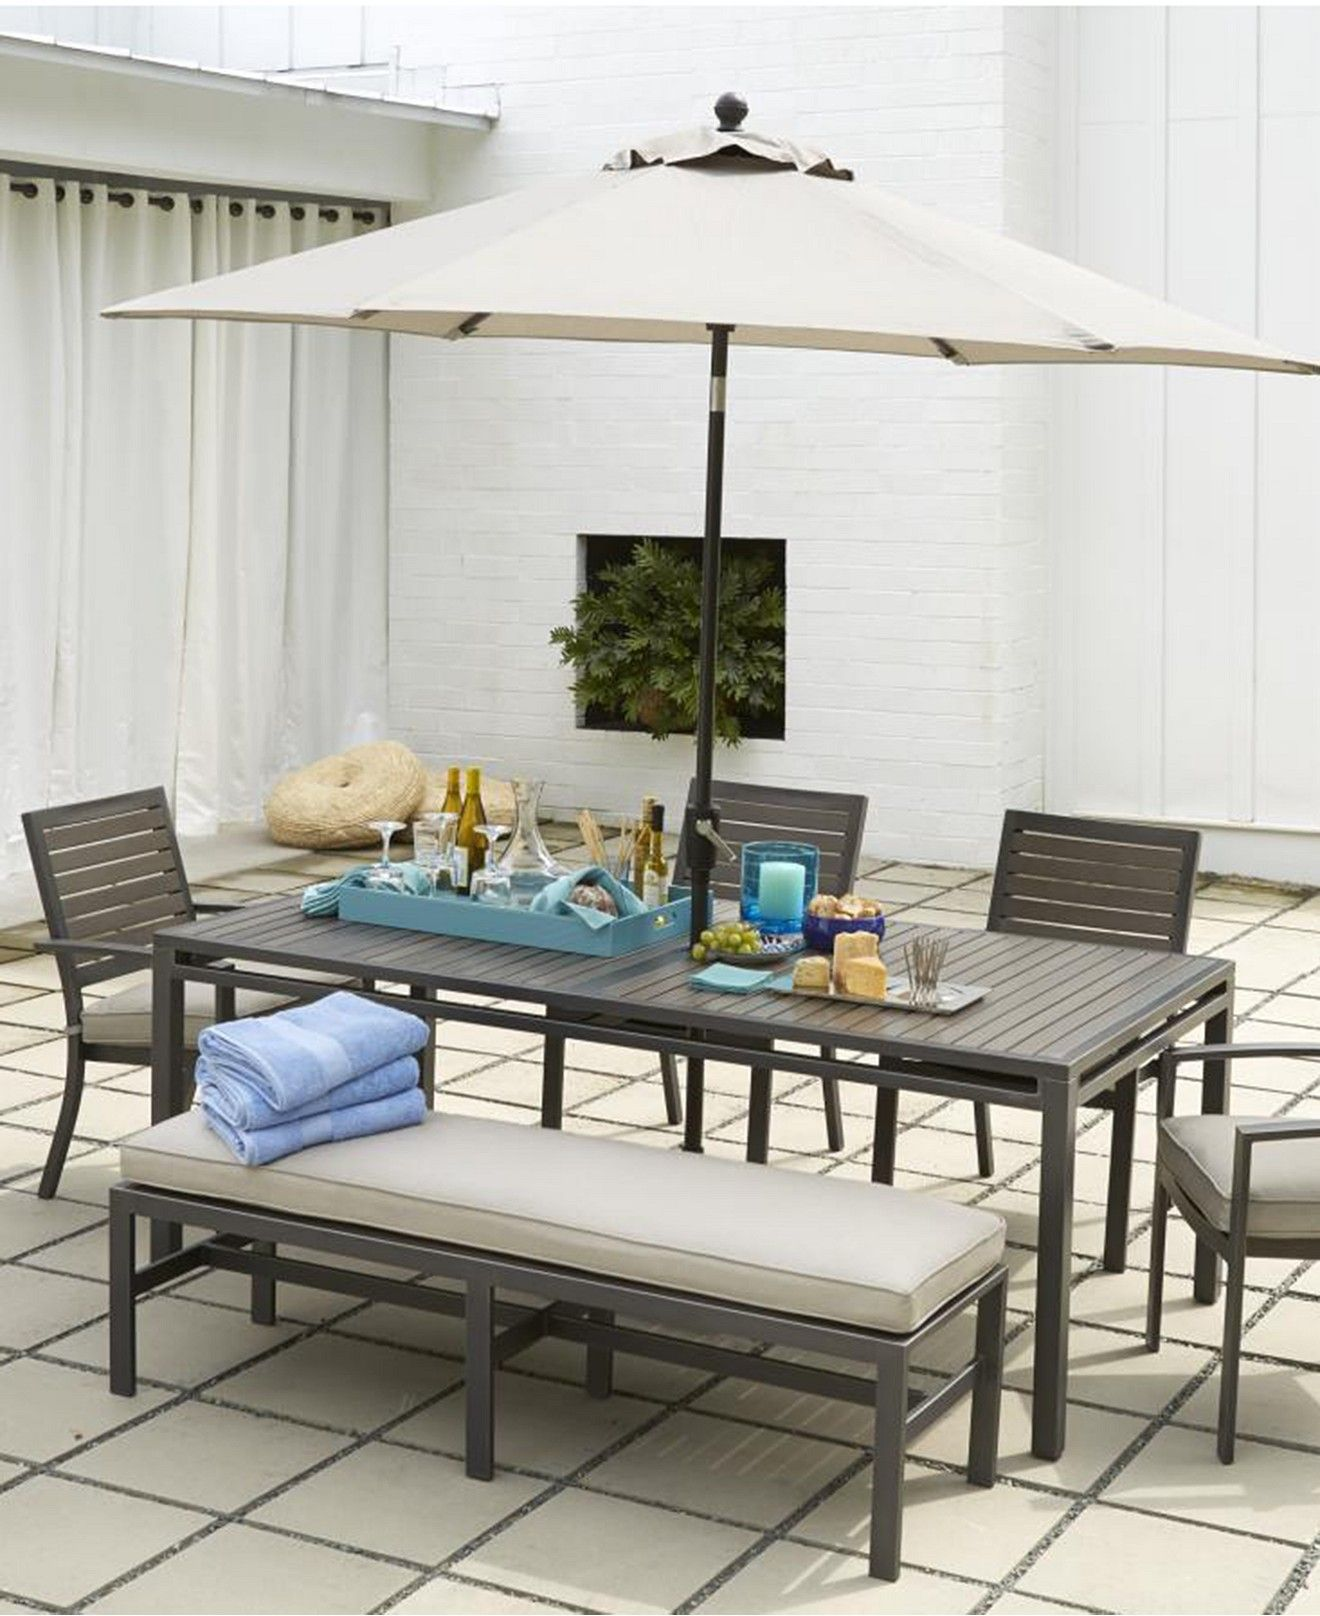 set design cupboard wayfair modern inspiring metal including trends of plastic large furniture patio stained round s conversation umbrella for tampa with images picture black also deck gallery chairs blue martha stewart ideas macys wicker outdoor affordable